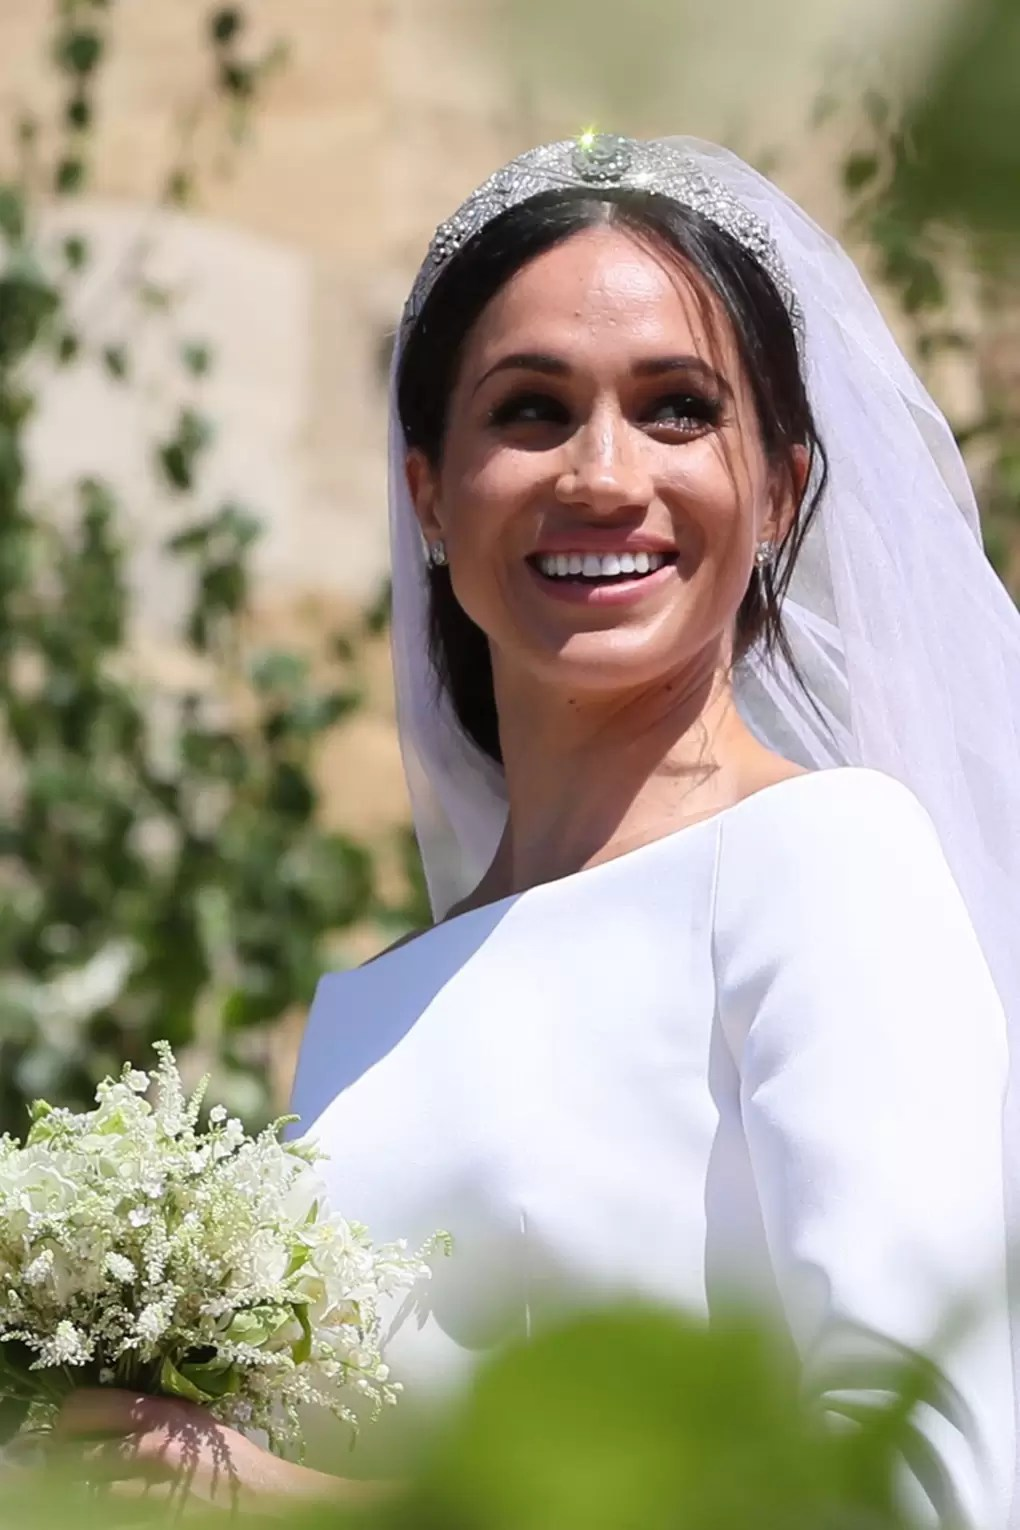 Close up of Meghan Markle's wedding dress and tiara in the sunshine